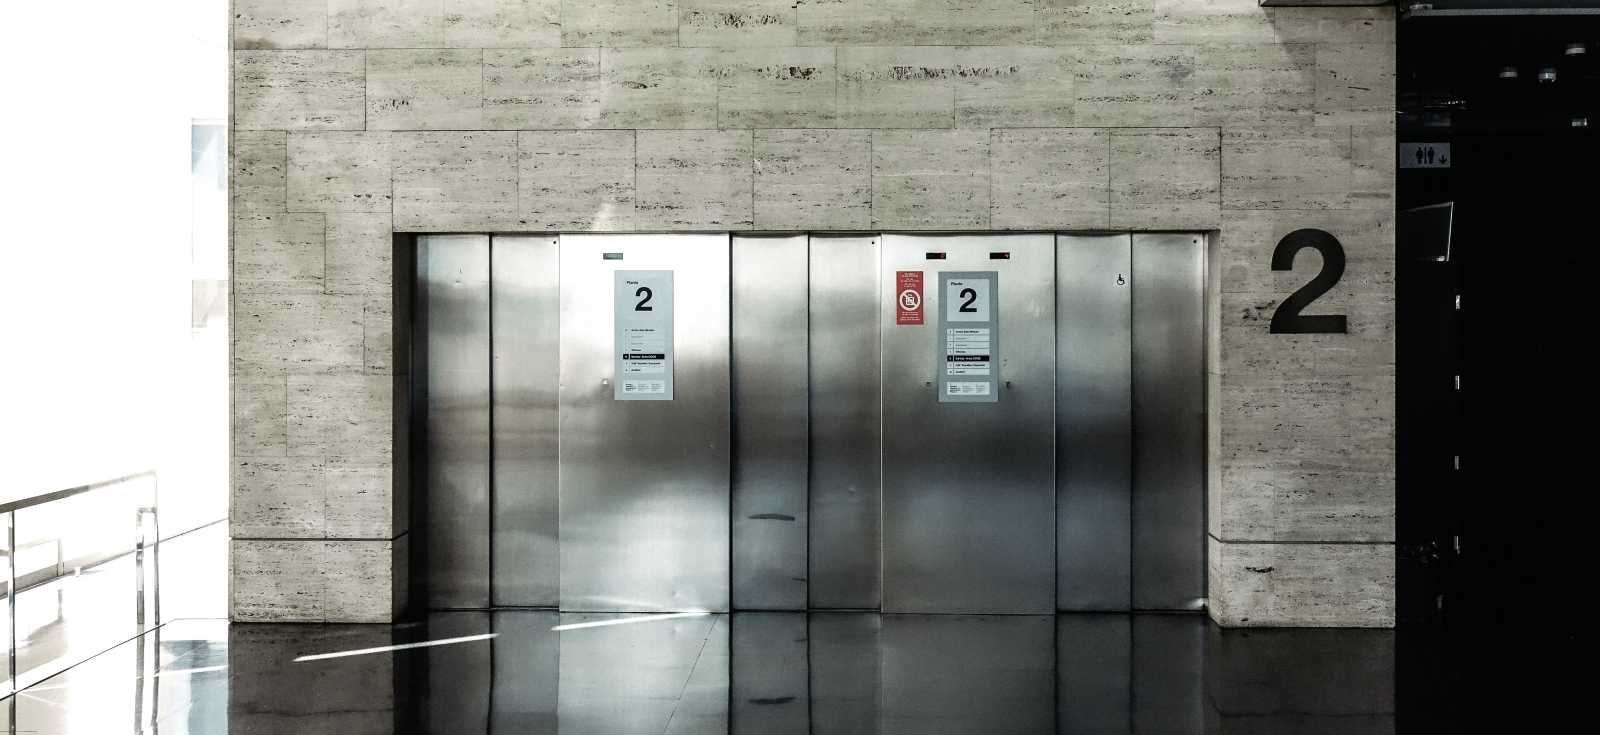 No CMMS? The headache of lift regulations